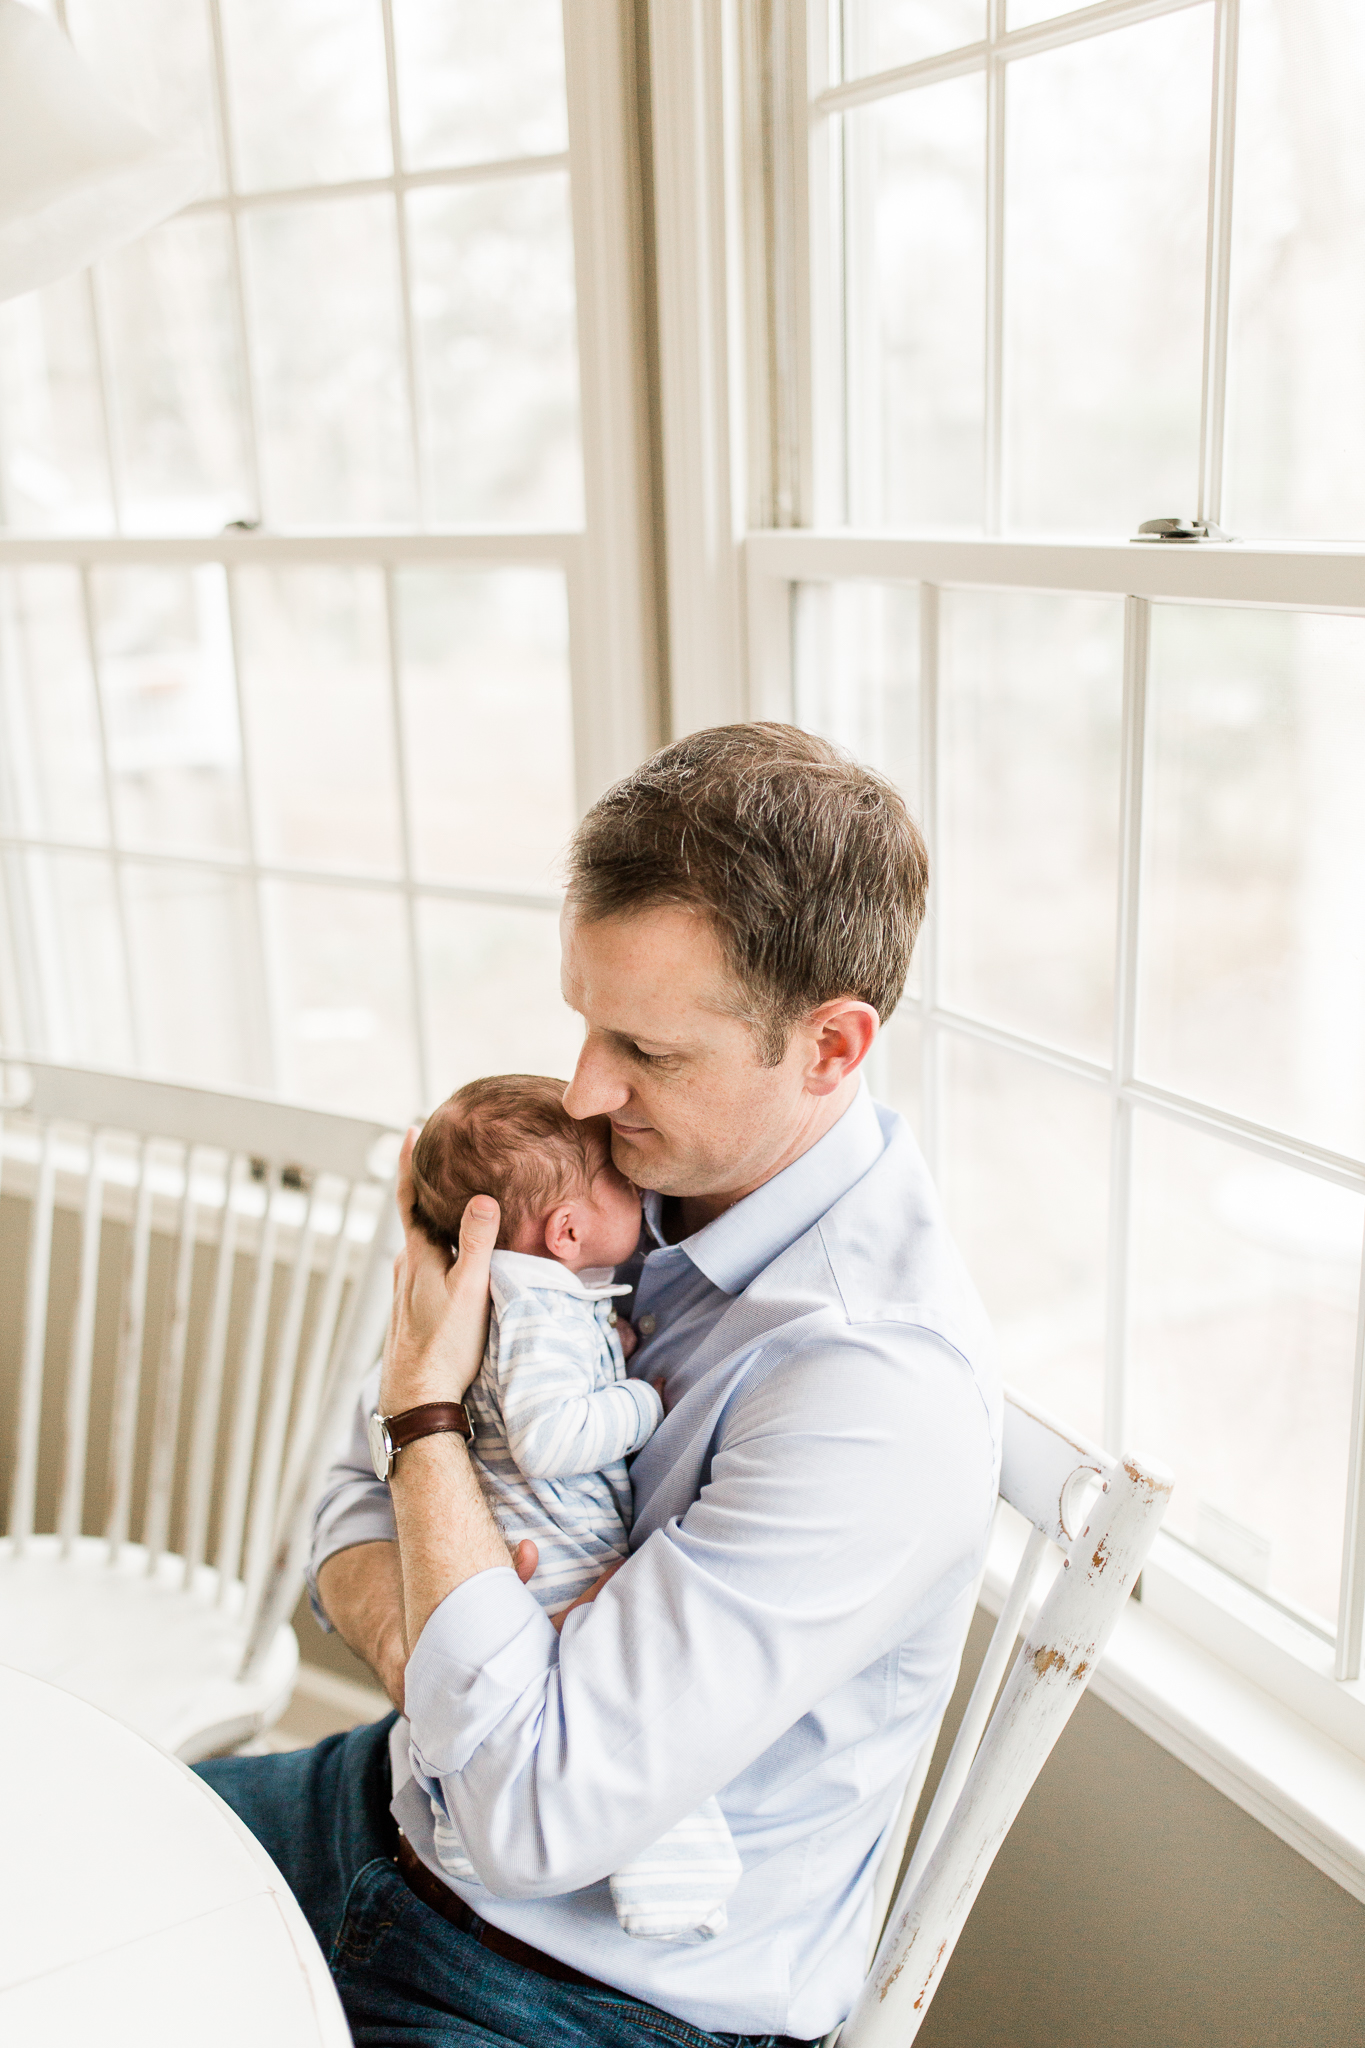 Father cuddles his newborn son in a light filled sunroom, Prarie Village lifestyle newborn photographer, Rebecca Clair Photography